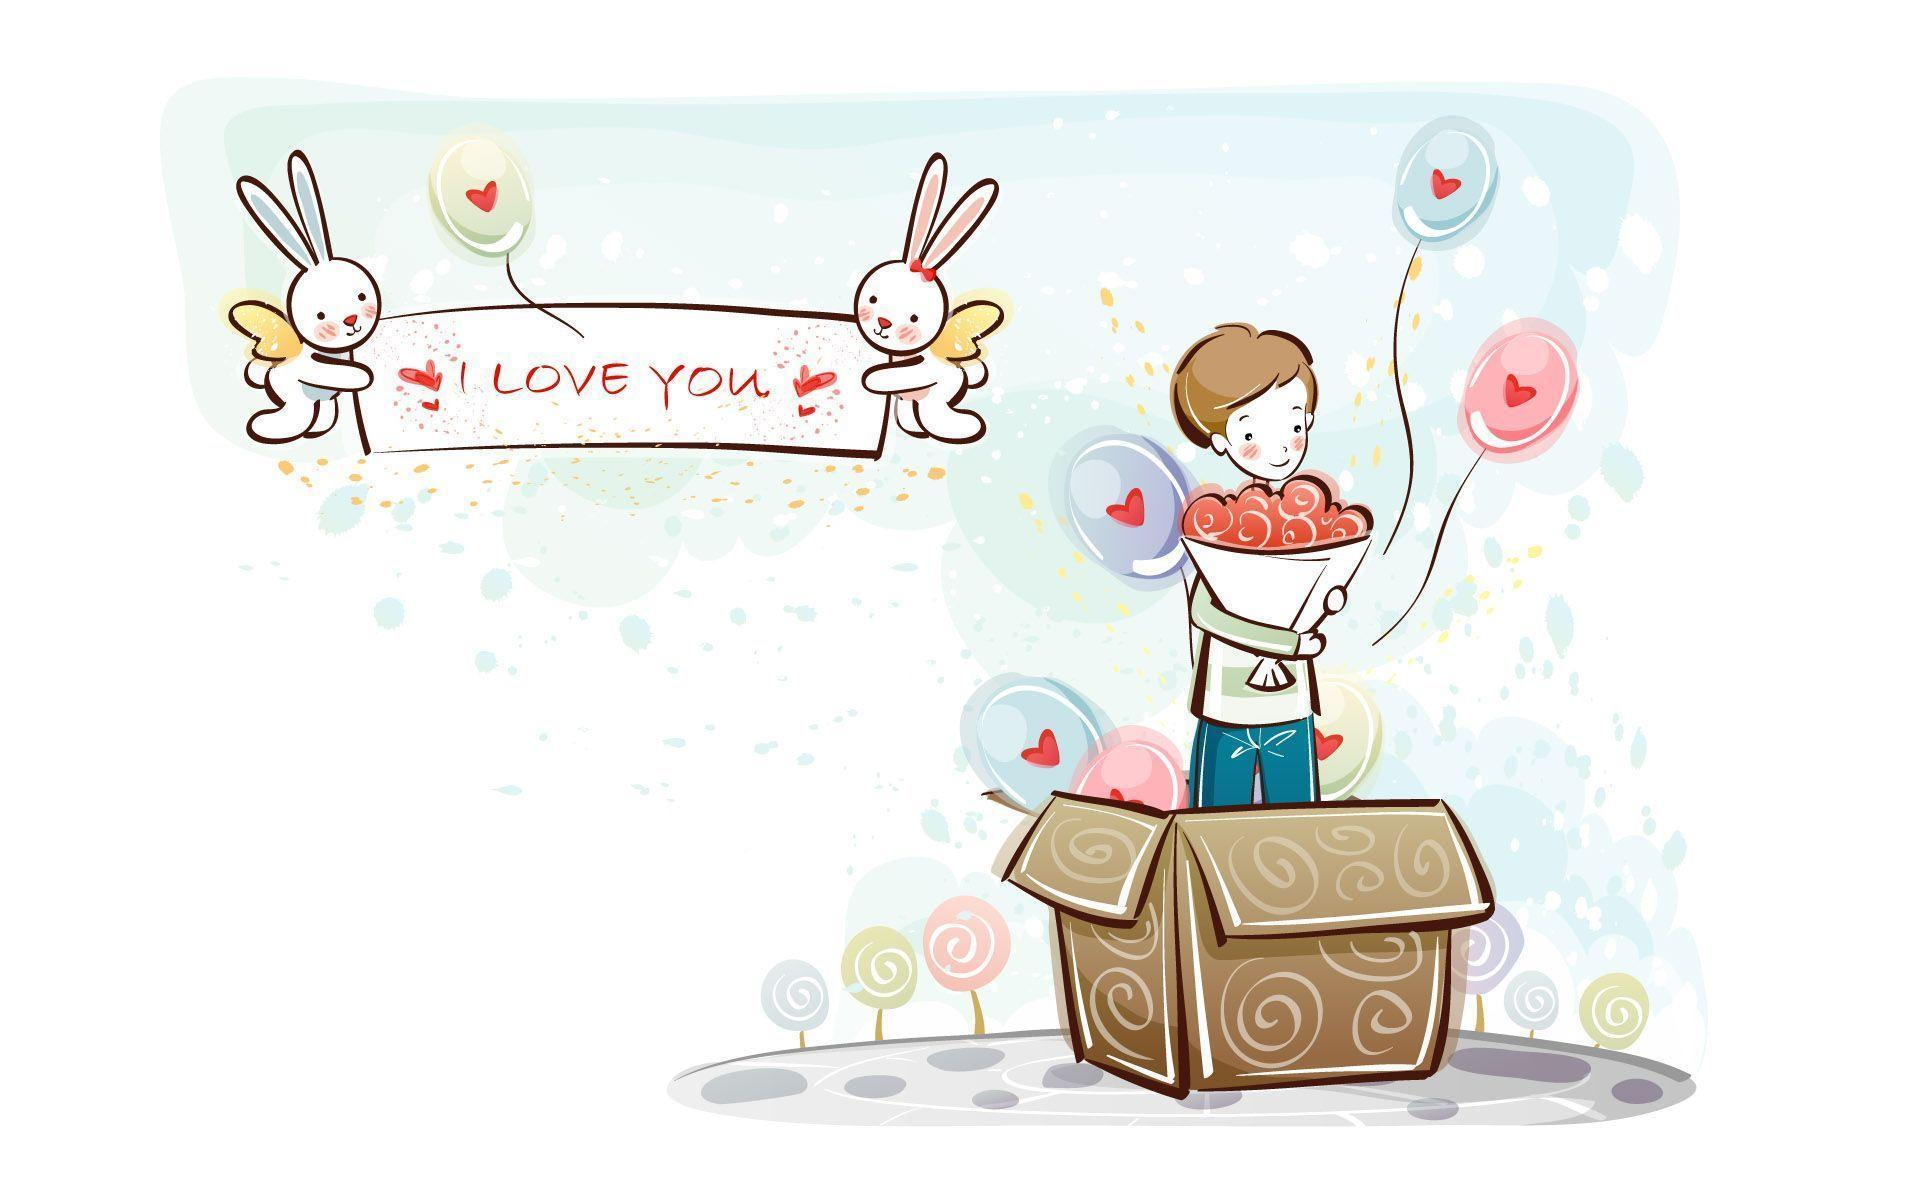 Love New cute cartoon Wallpaper : Image Gallery love couple cartoon wallpaper